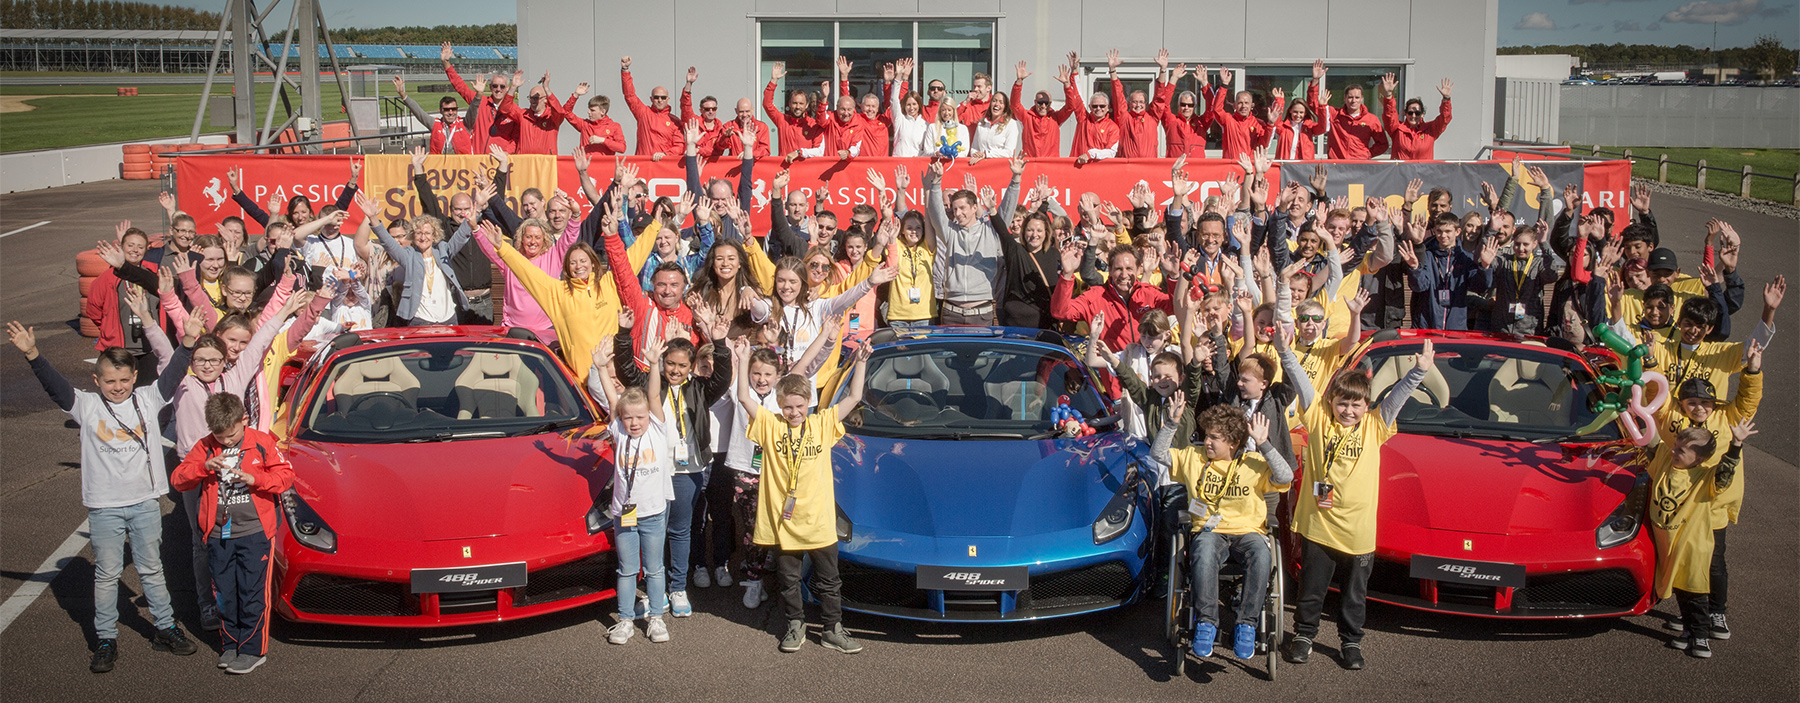 TrackWorthy - Ferrari North Europe 8th Annual Charity Event at Silverstone (73)